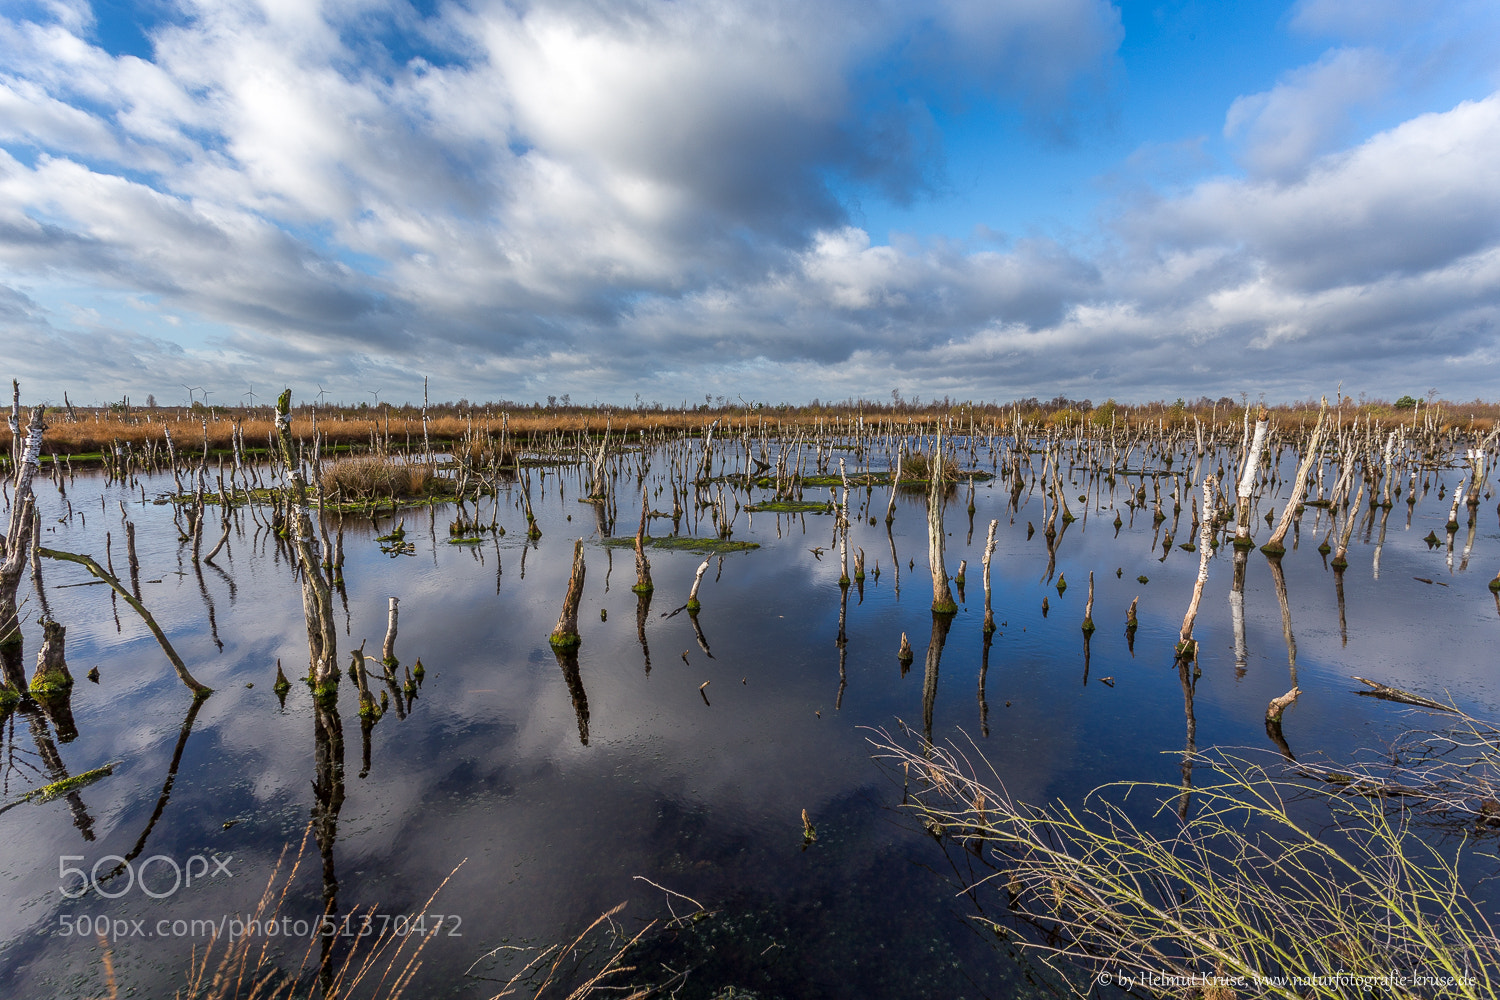 Photograph Moor Landscape by Helmut Kruse on 500px